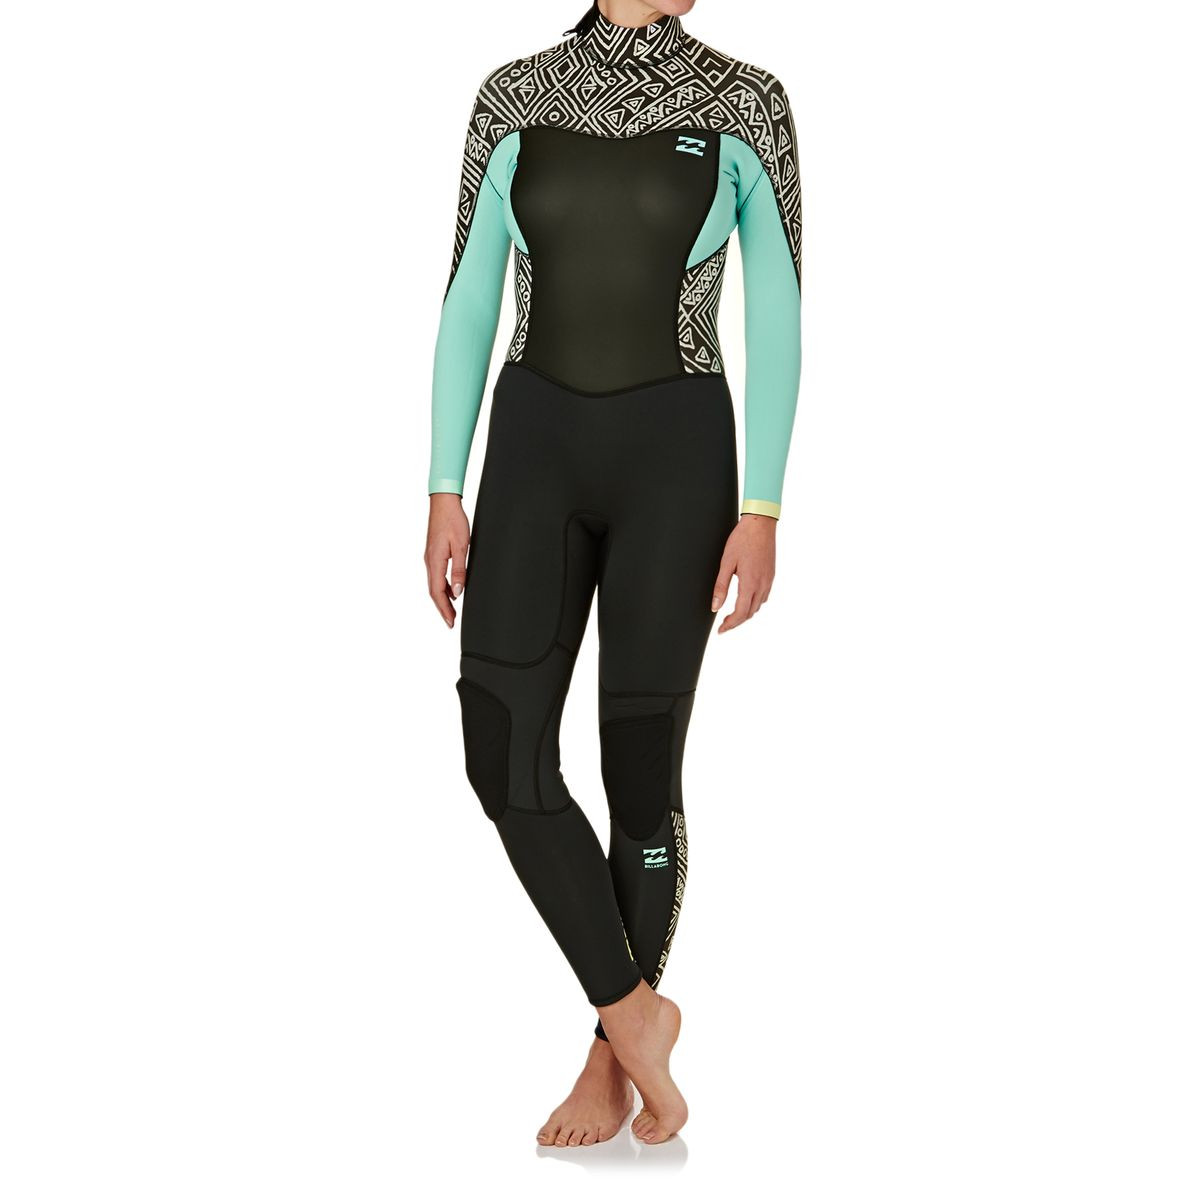 Billabong Womens Synergy 4/3mm 2017 Back Zip Wetsuit - Geo Diamond